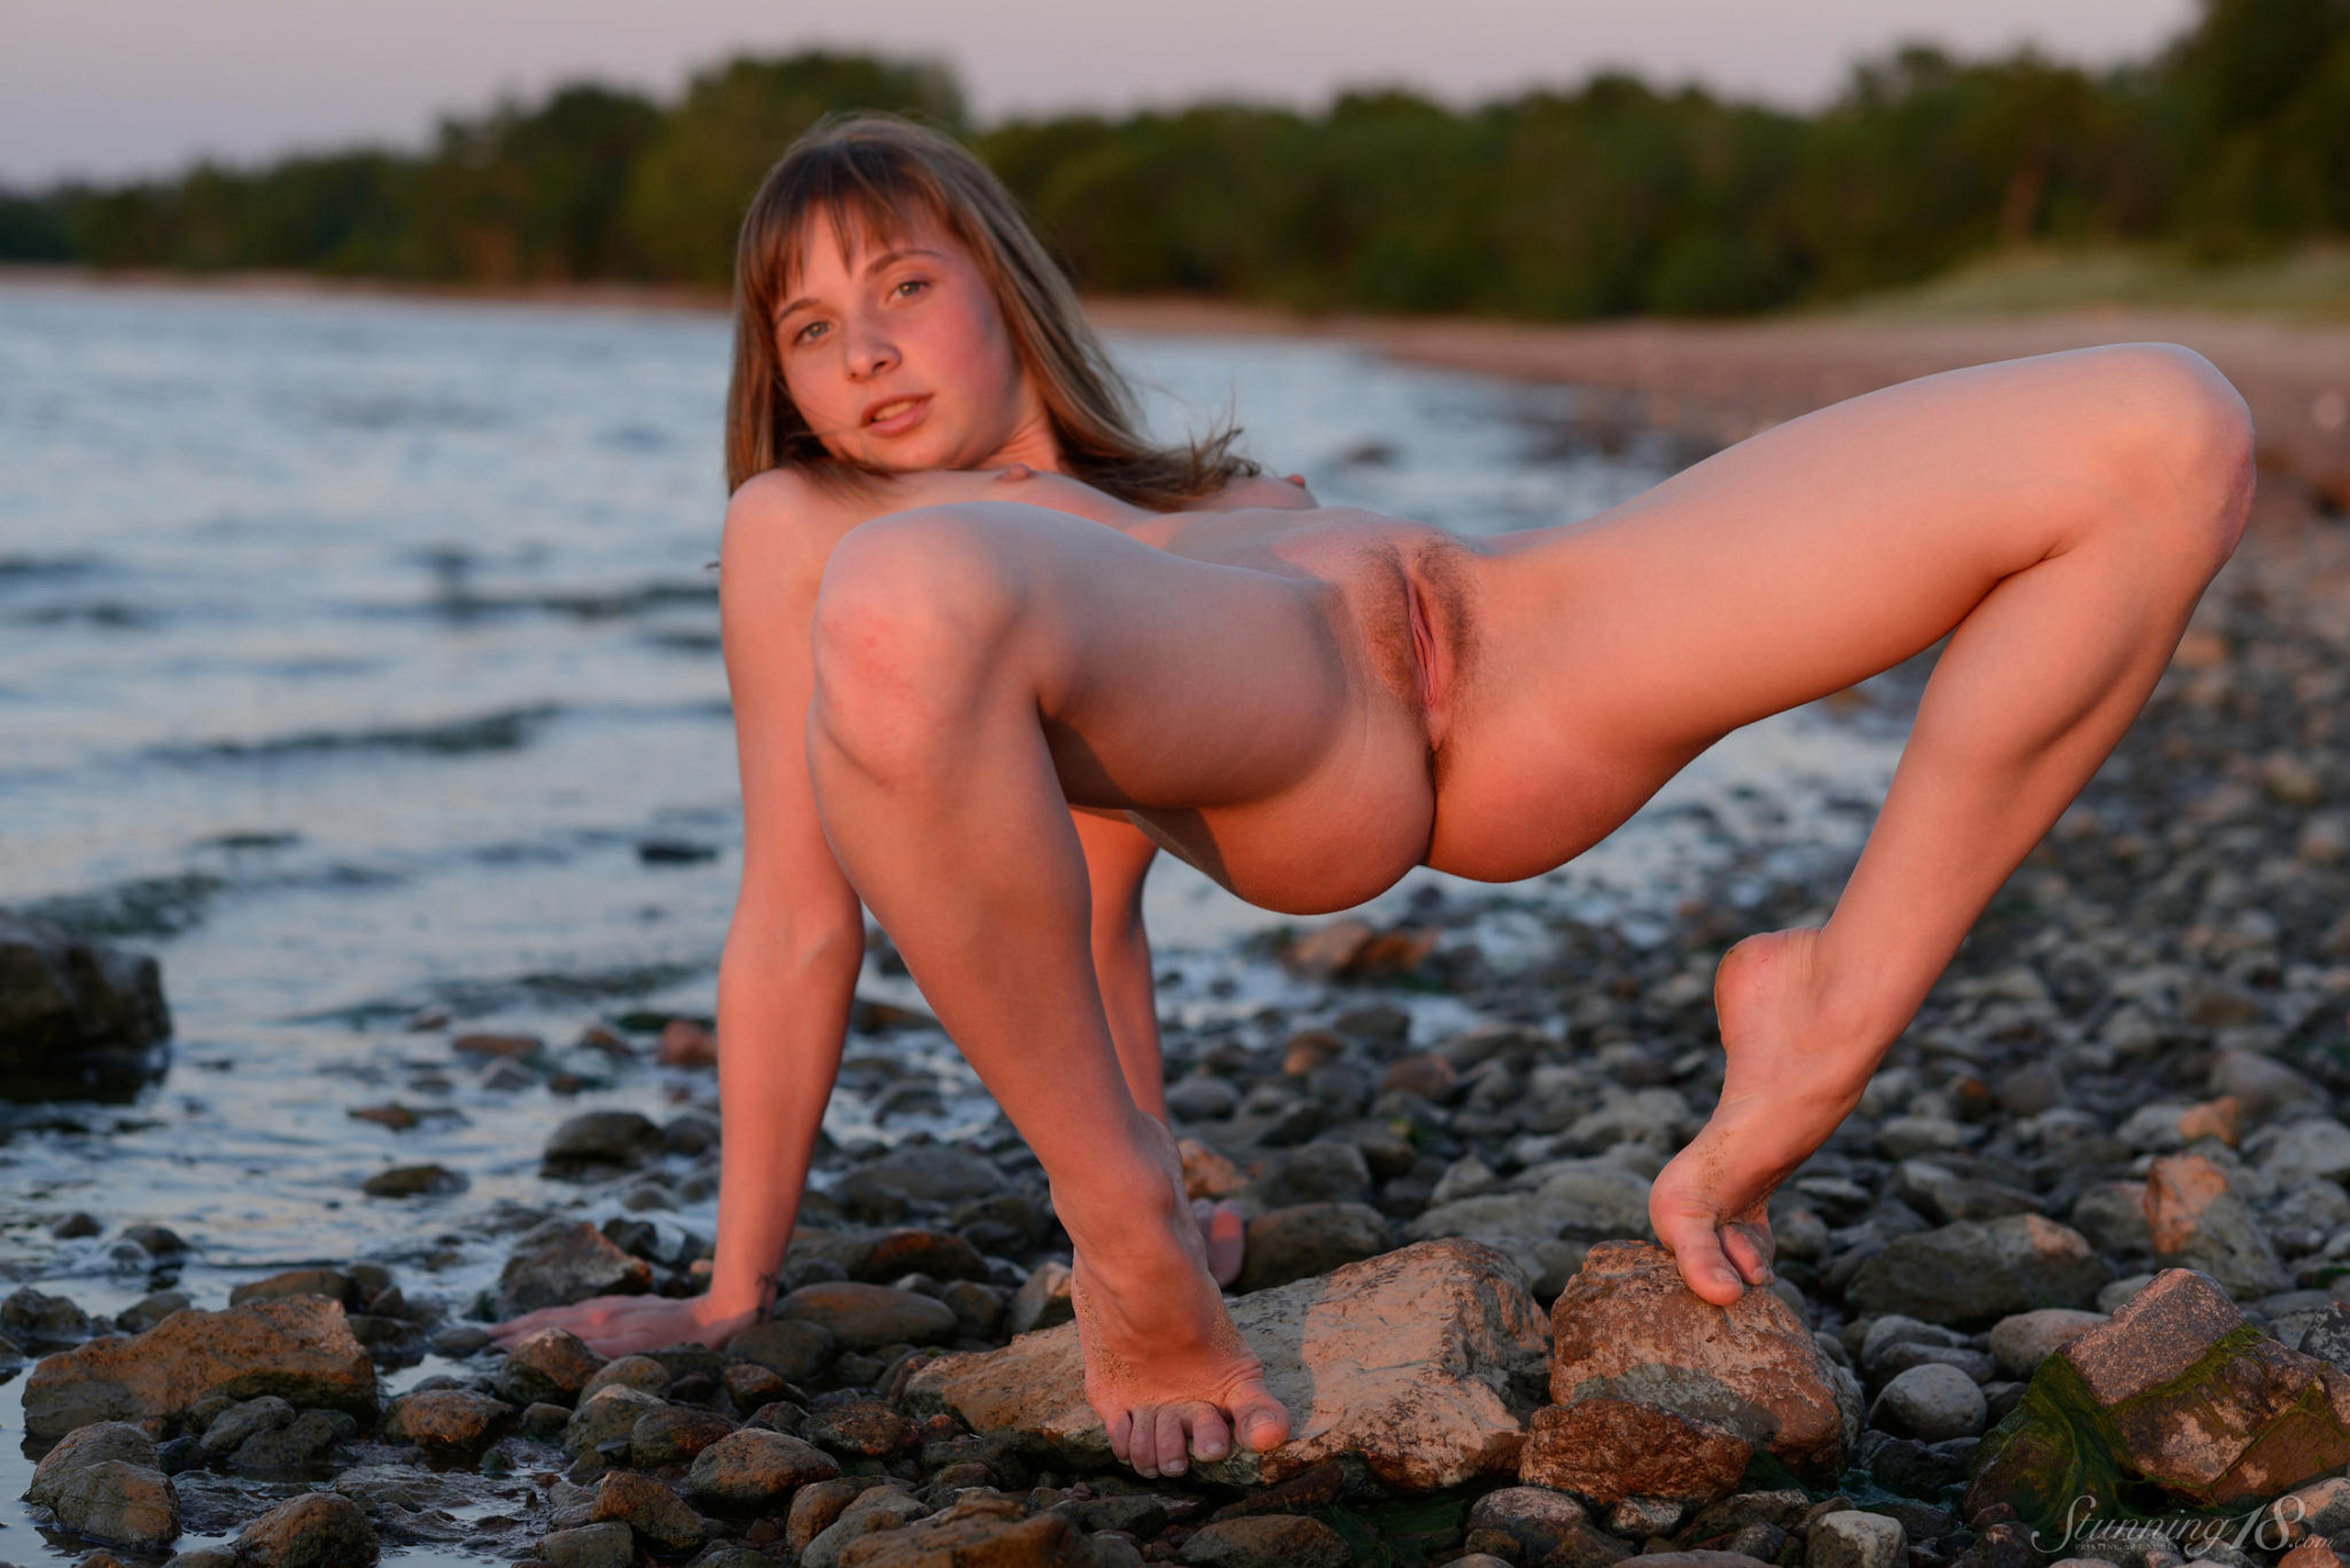 Sweet nudes on beach found site